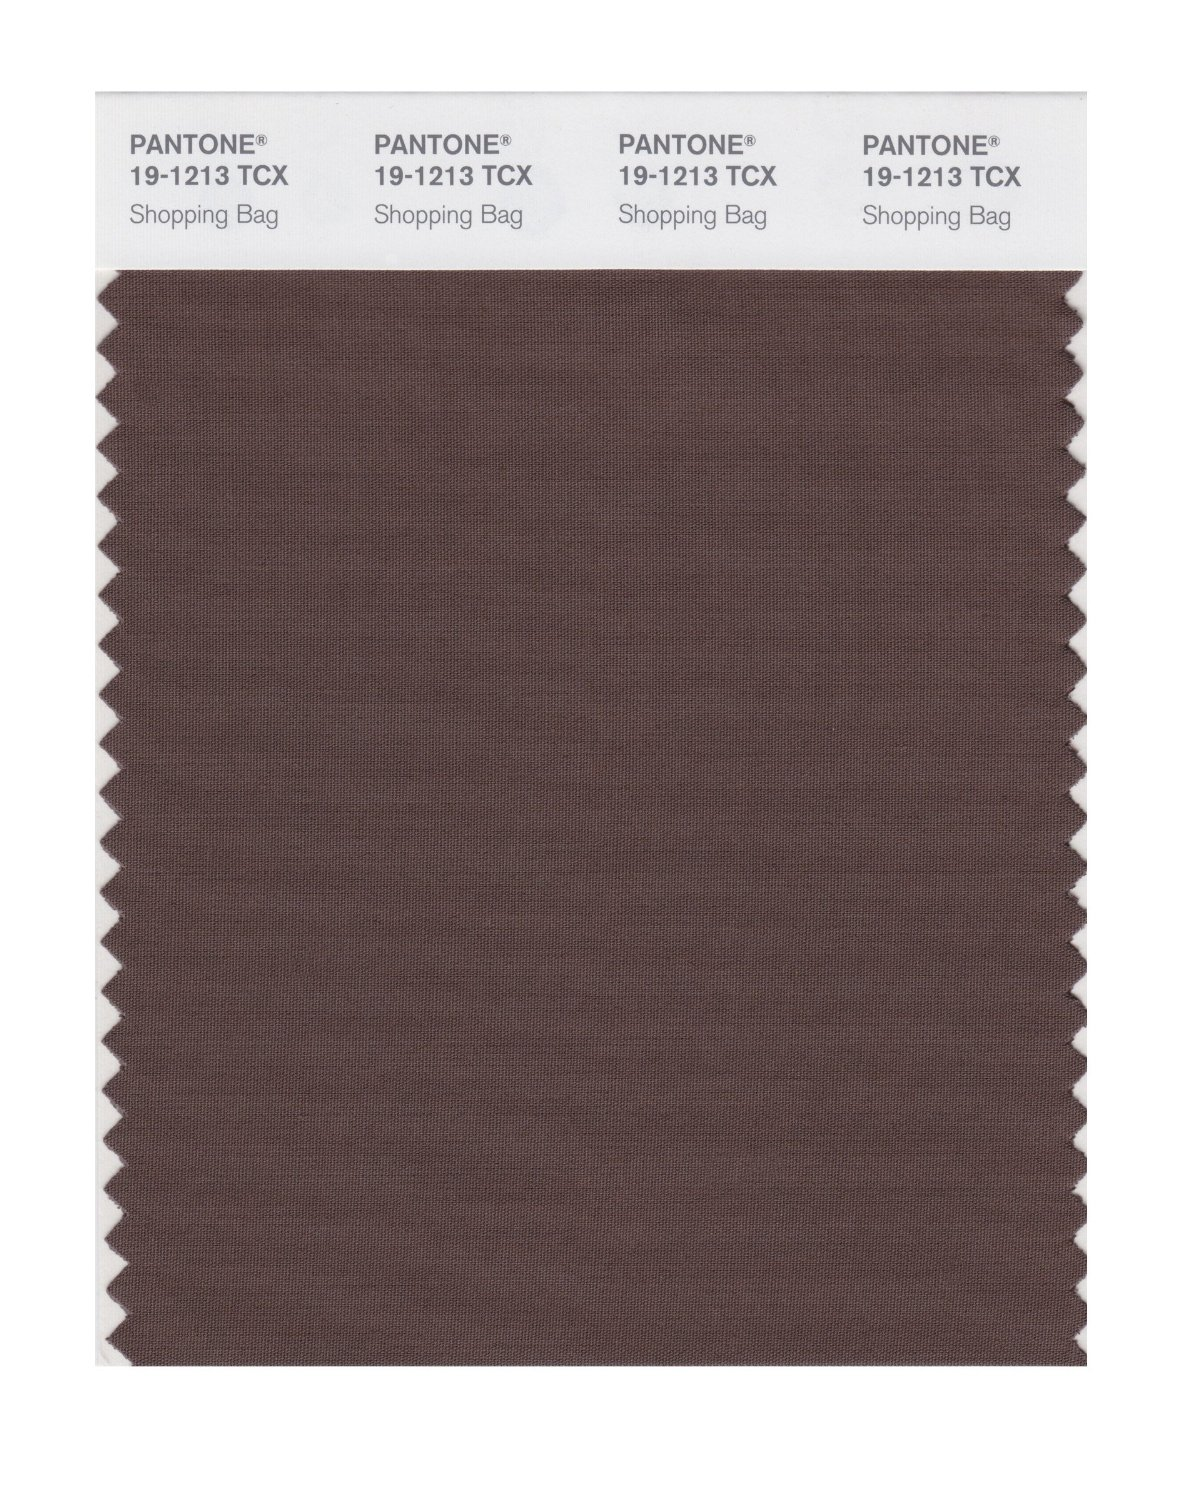 Pantone Smart Swatch 19-1213 Shopping Bag